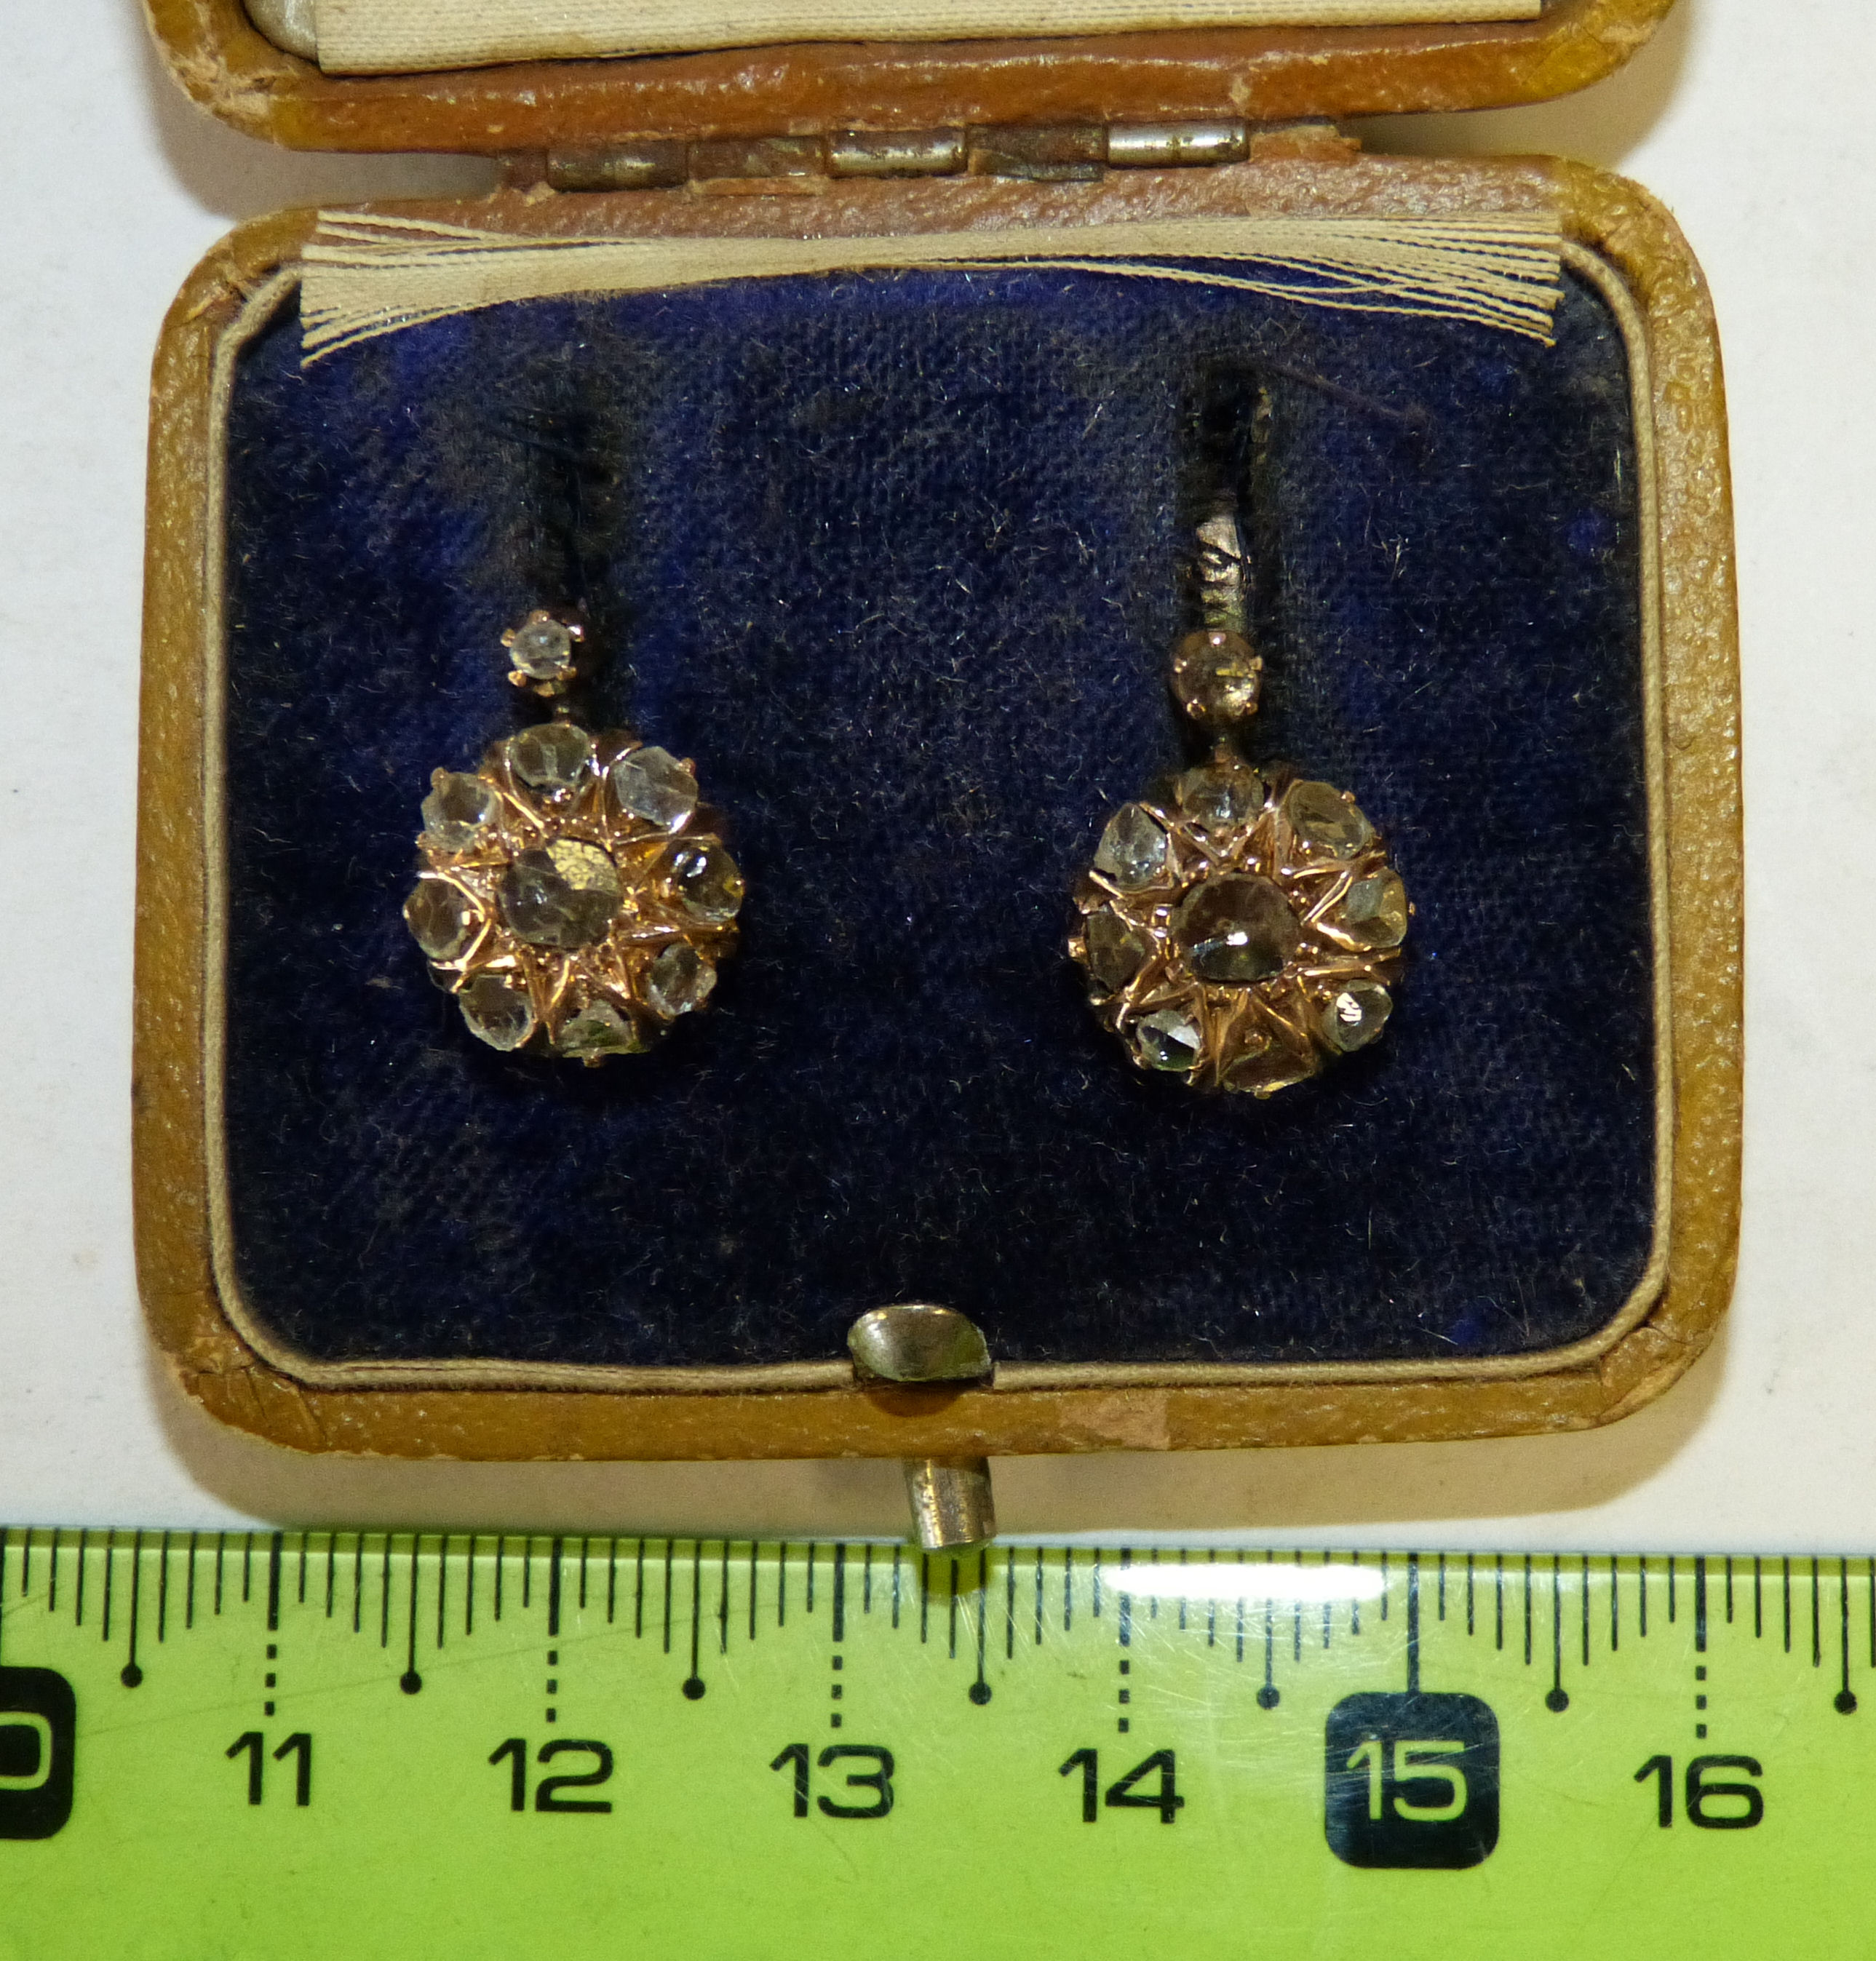 A Pair of 19th Century Gold Earrings mounted with rough cut diamonds